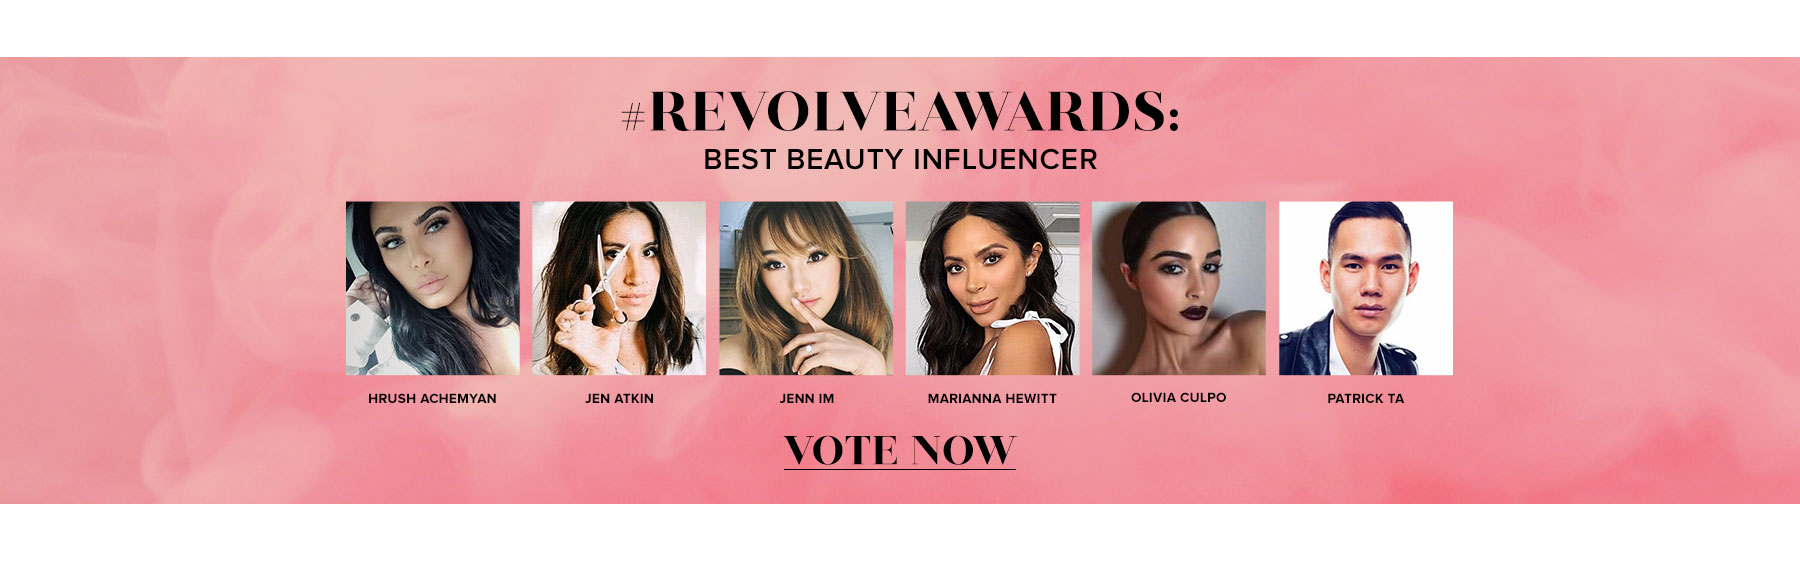 REVOLVEAWARDS. Best Beauty Influencer. Vote now!